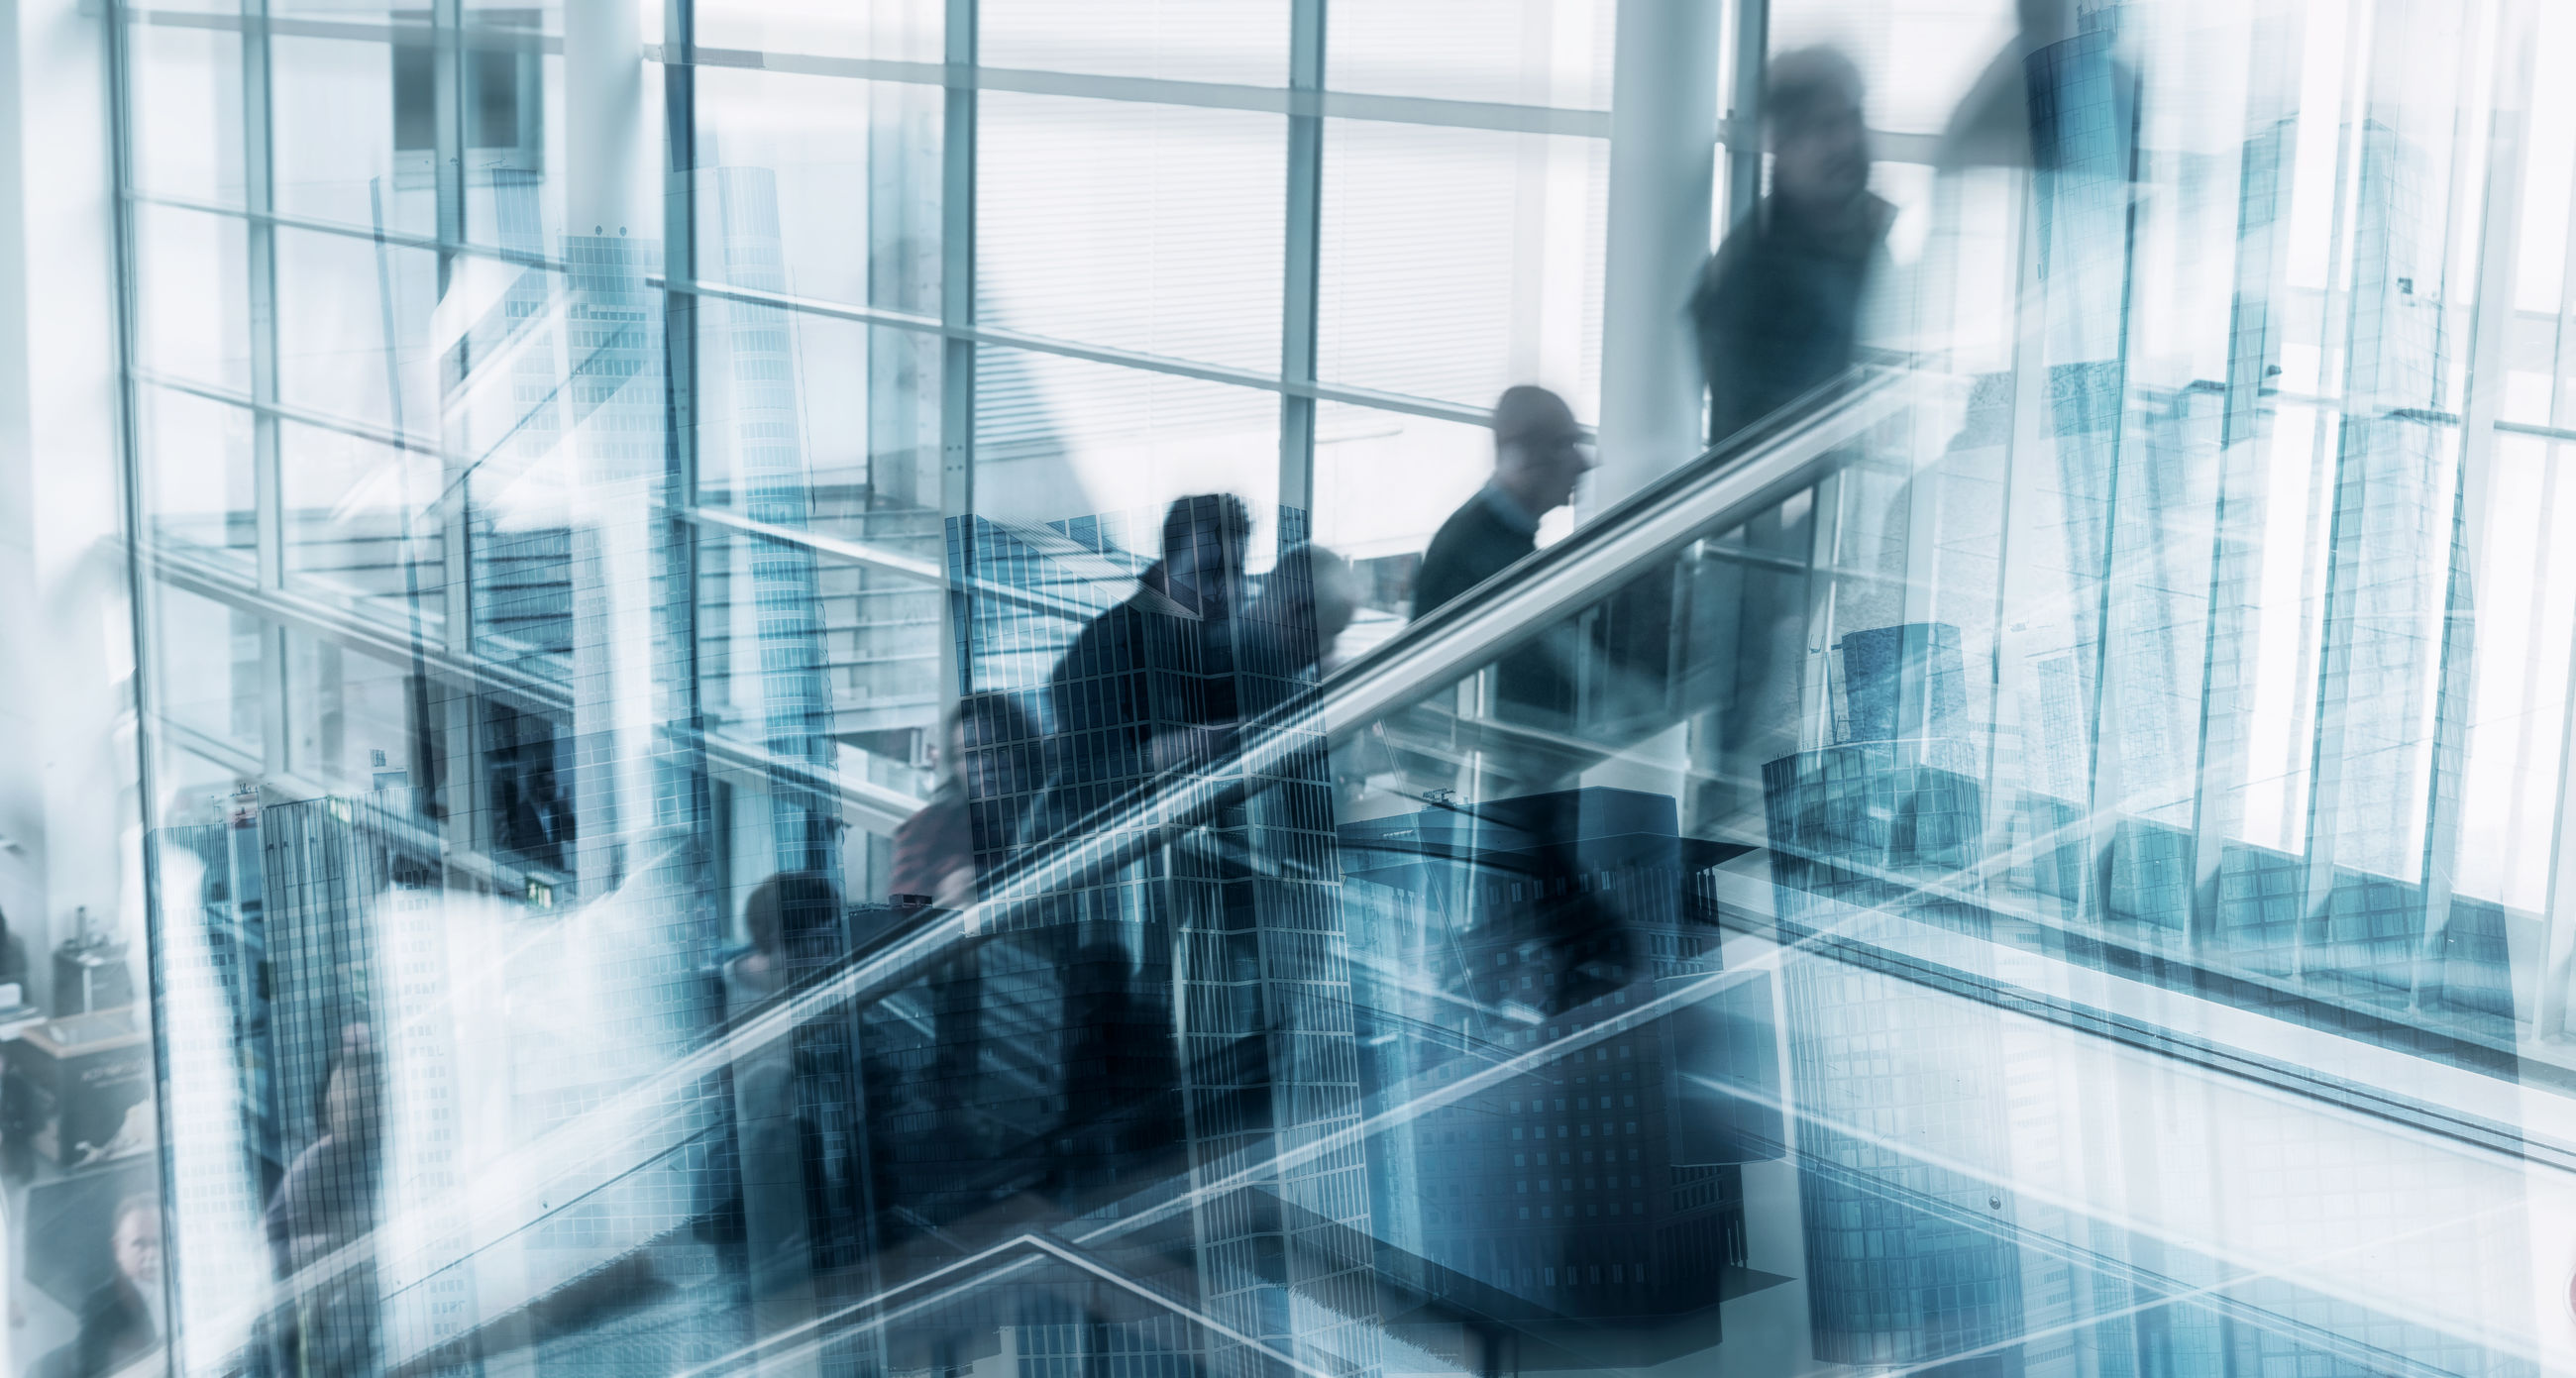 Business people standing on escalator seen through glass window